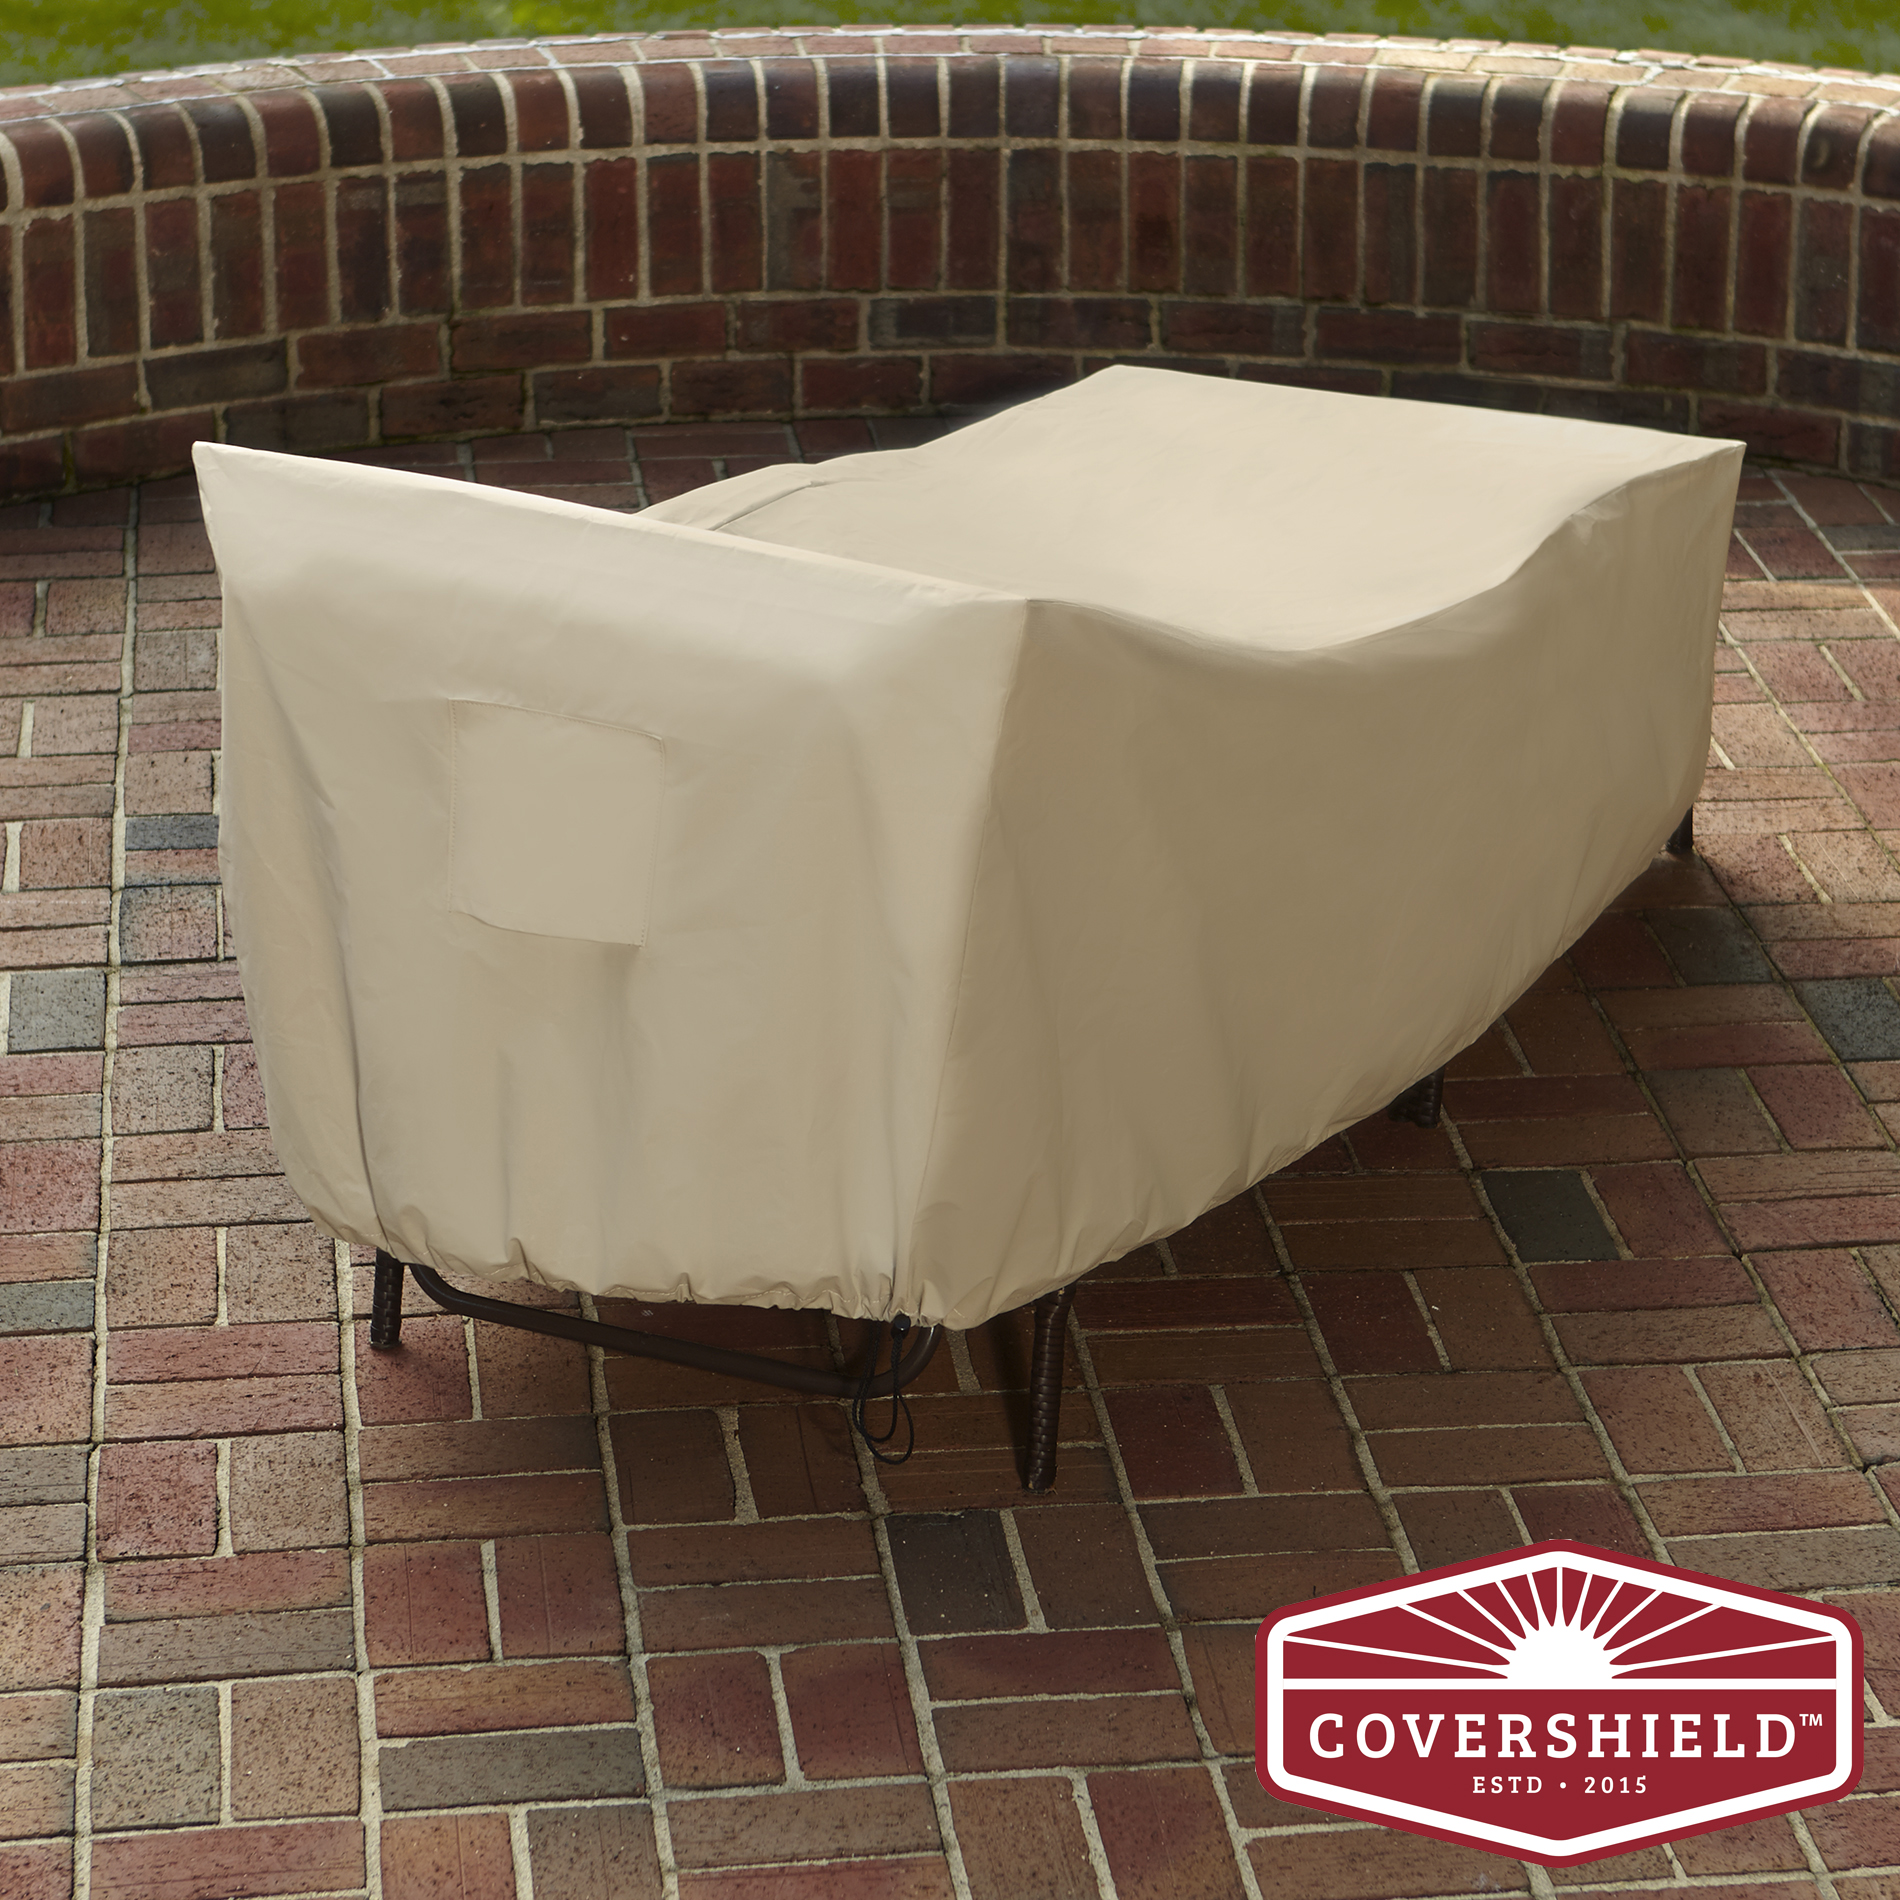 Covershield Lounge Chair Cover - Basic Outdoor Living